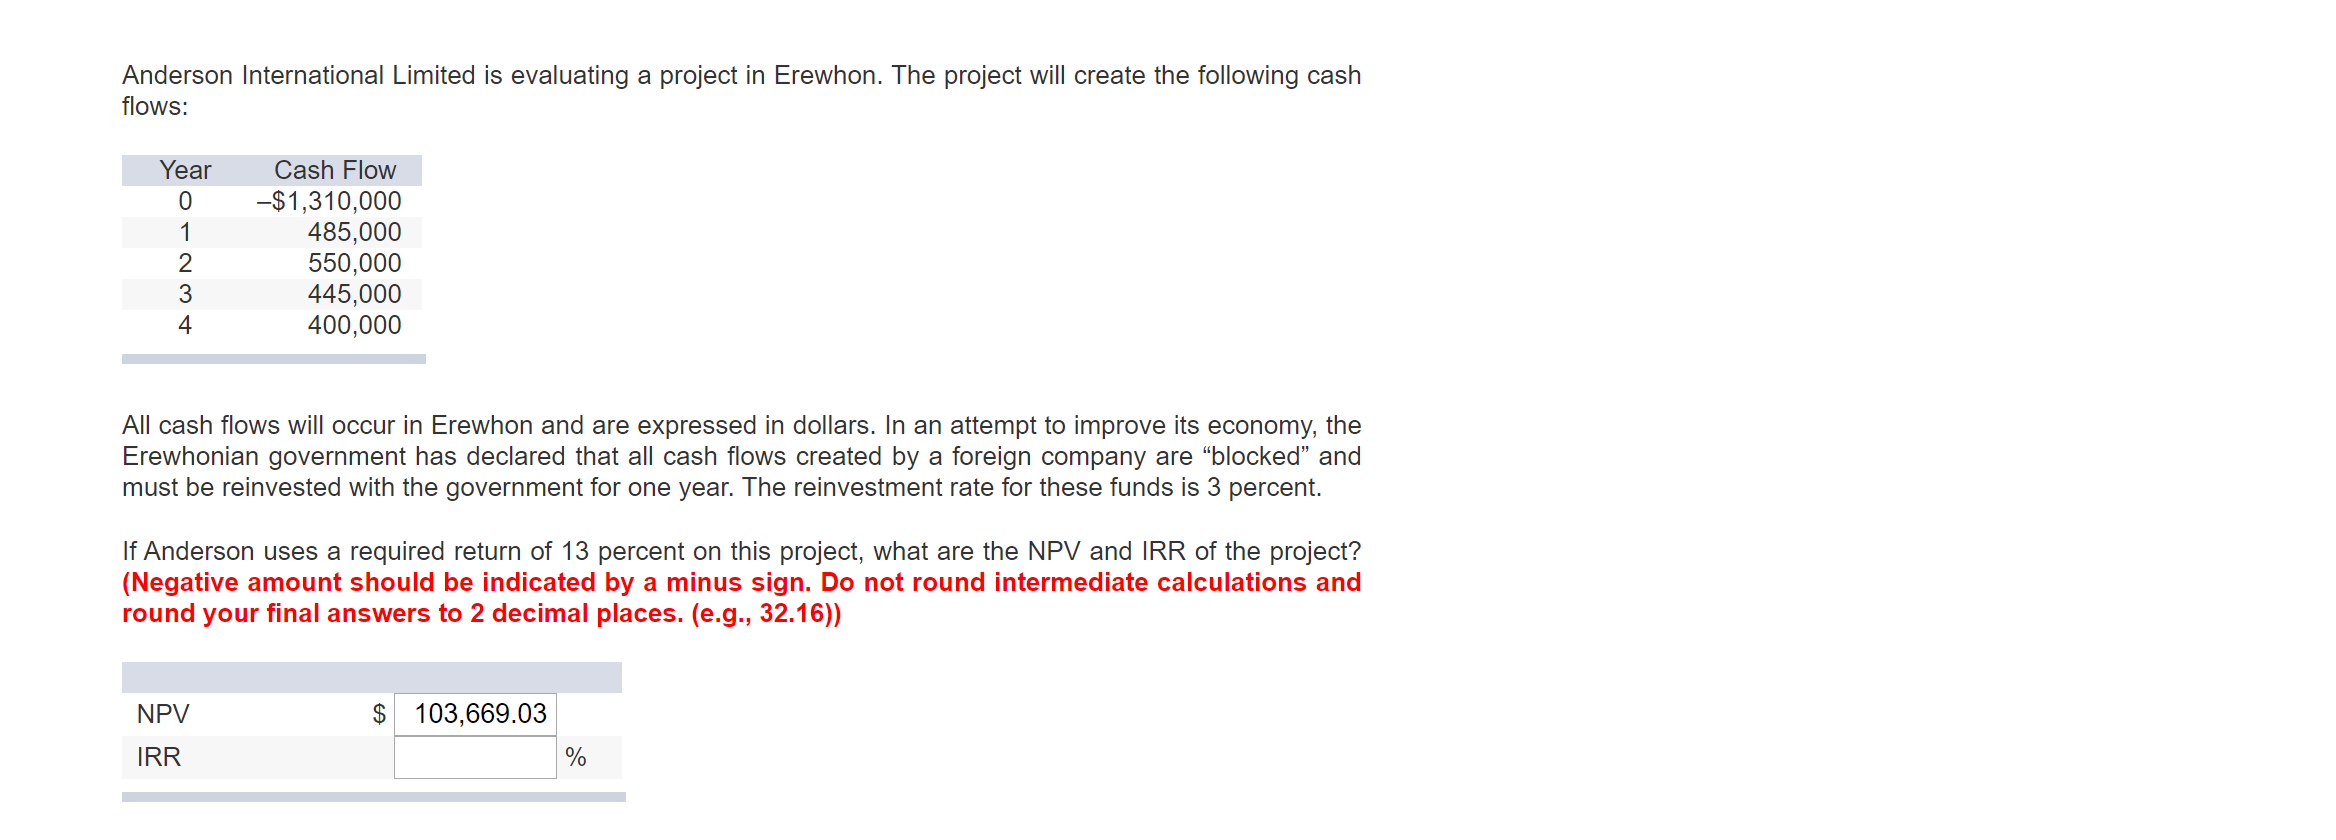 """Anderson International Limited is evaluating project in Erewhon. The project will create the following cash a flows: Cash Flow Year -$1,310,000 485,000 550,000 445,000 400,000 0 1 2 4 All cash flows will occur in Erewhon and are expressed in dollars. In an attempt to improve its economy, the Erewhonian government has declared that all cash flows created by a foreign company are """"blocked"""" and must be reinvested with the government for one year. The reinvestment rate for these funds is 3 percent. If Anderson uses a required return of 13 percent on this project, what are the NPV and IRR of the project? (Negative amount should be indicated by a minus sign. Do not round intermediate calculations and round your final answers to 2 decimal places. (e.g., 32.16)) $ 103,669.03 NPV IRR"""